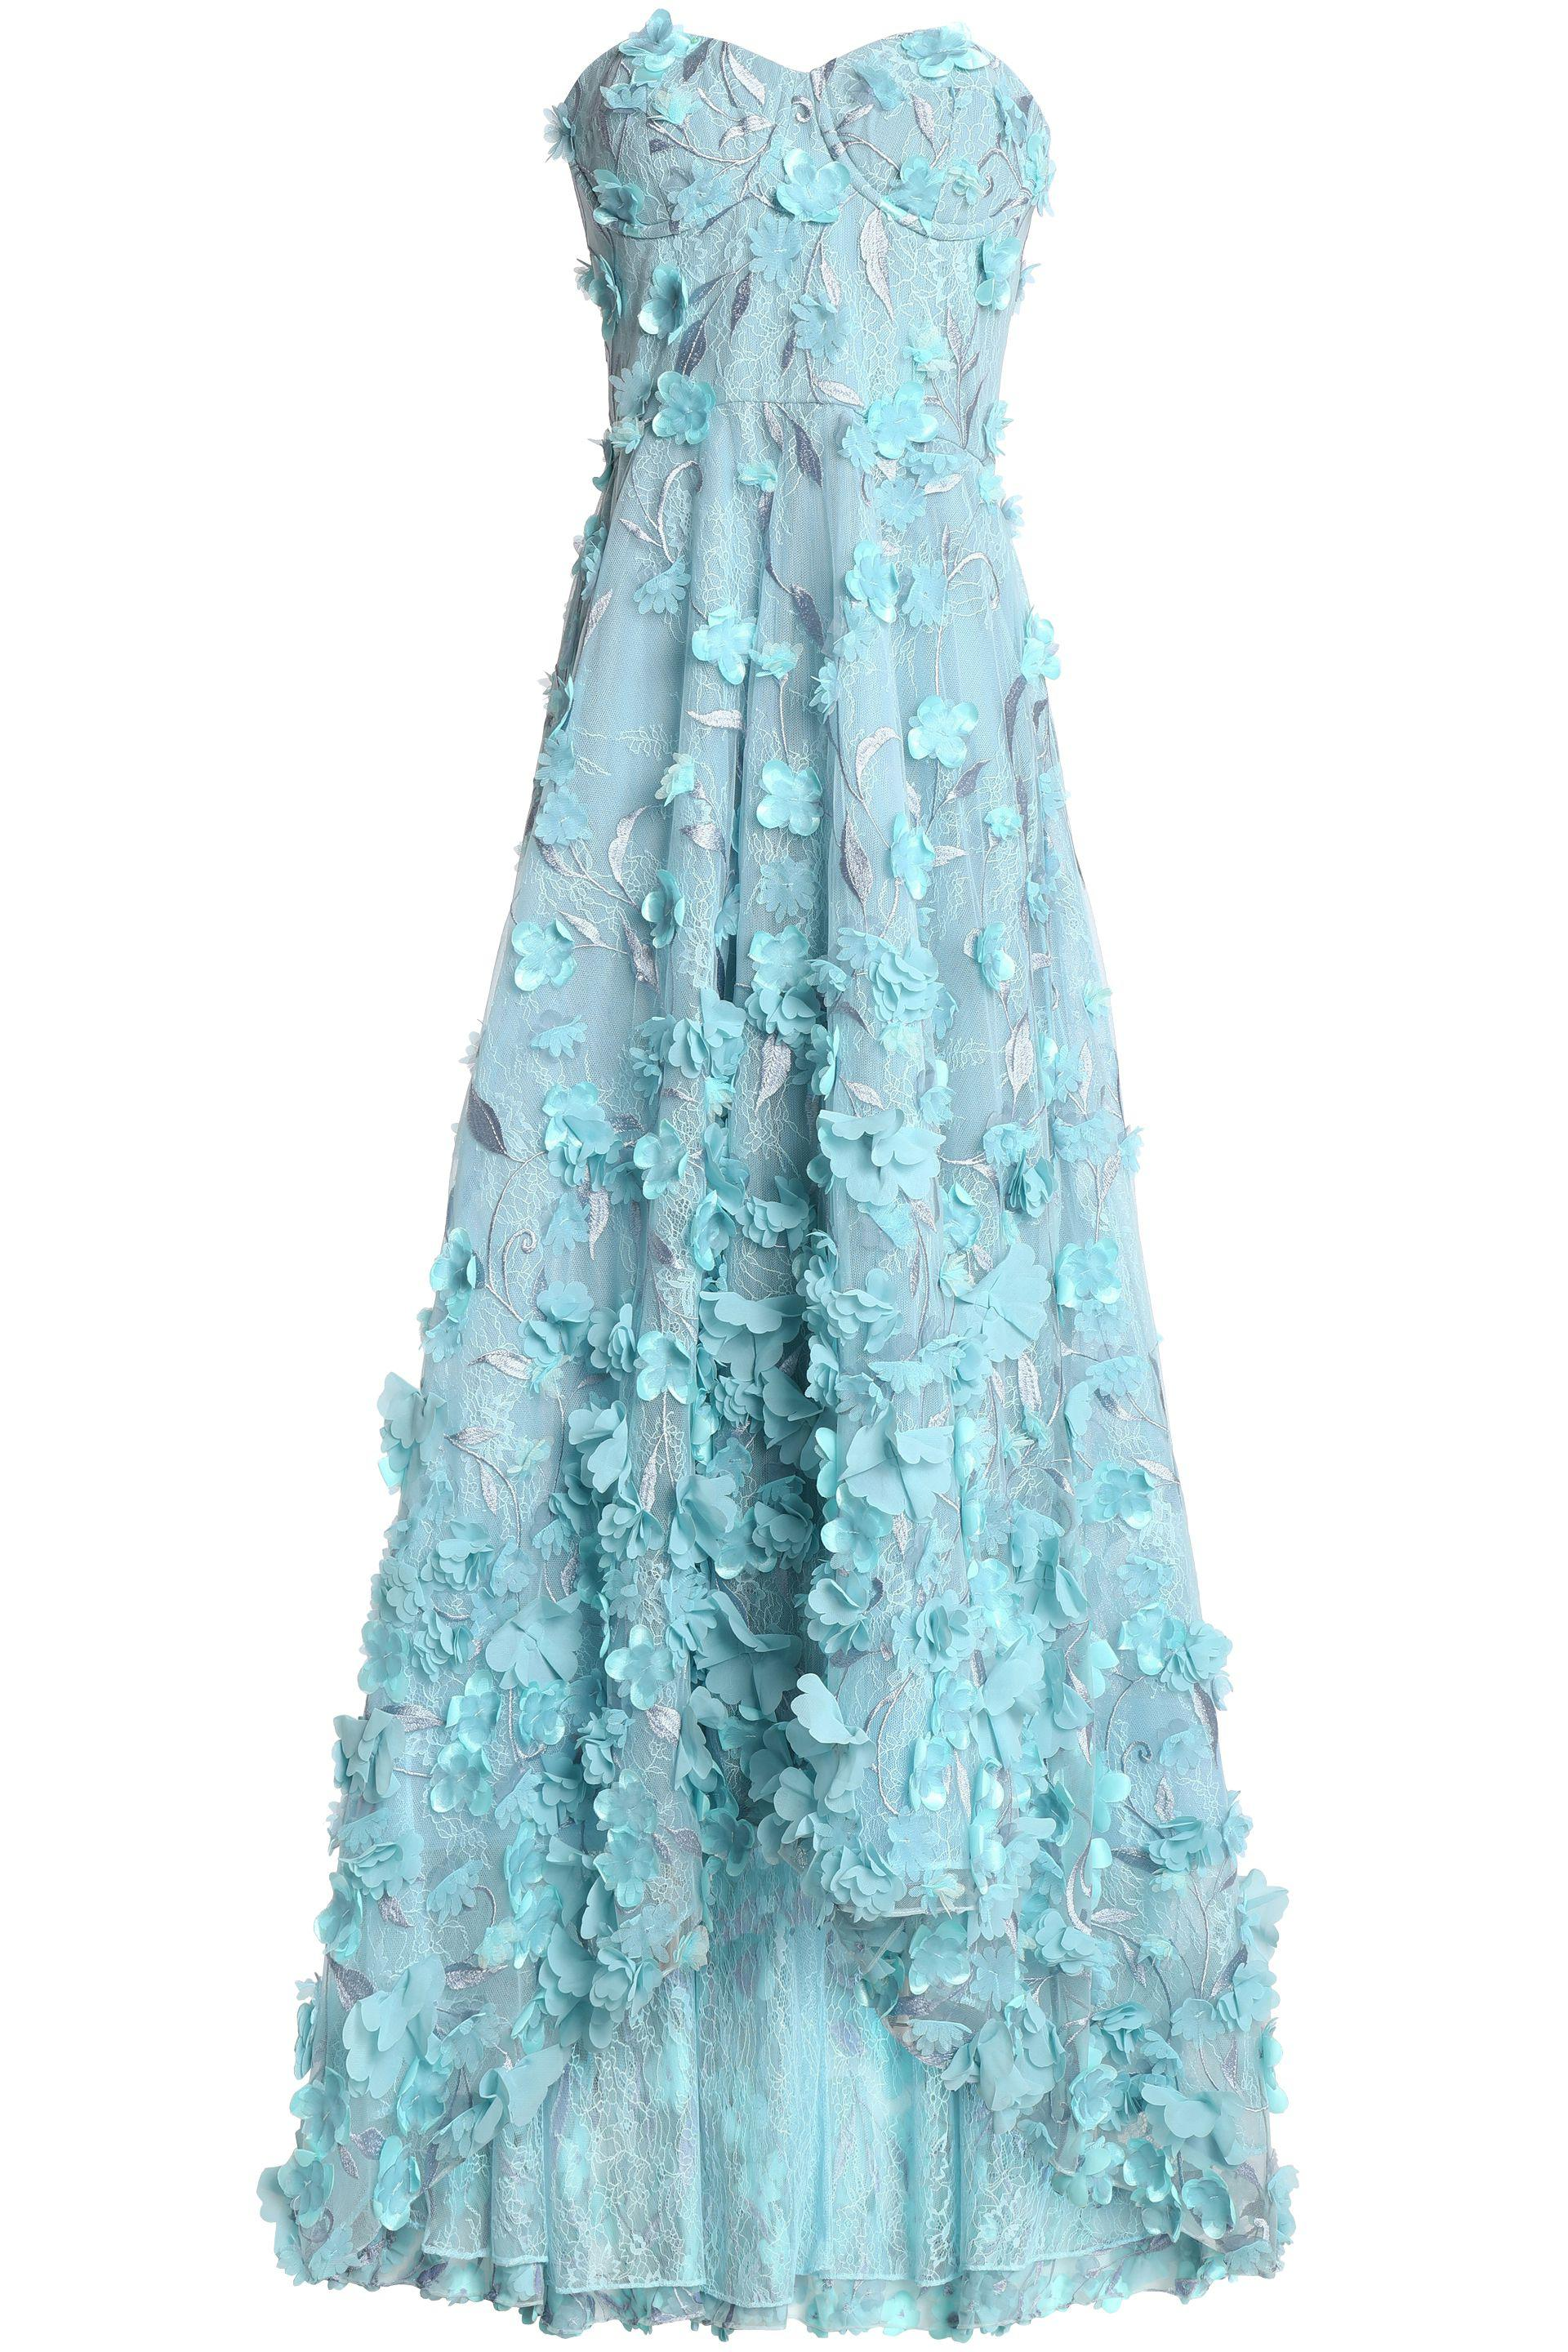 5eb636136290a Marchesa notte Strapless Floral-appliquéd Embroidered Tulle Midi ...